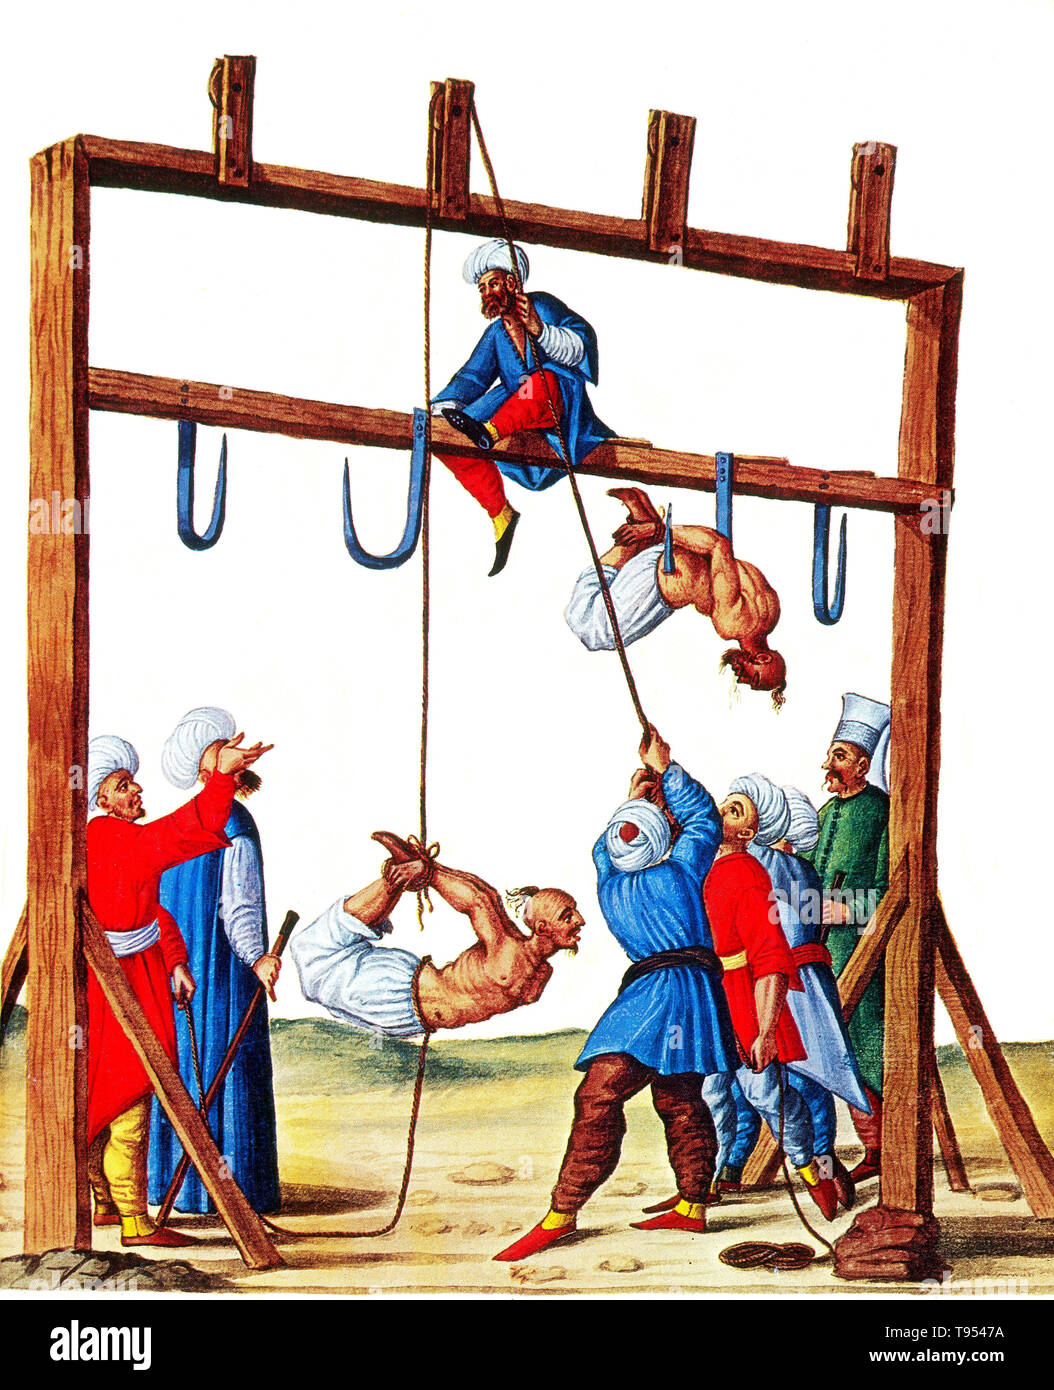 Entitled: 'The Execution of Christians, Turks and Jews', 1590s. Impalement, as a method of execution and also torture, is the penetration of a human by an object such as a stake, pole, spear, or hook, often by complete or partial perforation of the torso. It was used particularly in response to crimes against the state and regarded across a number of cultures as a very harsh form of capital punishment and recorded in myth and art. Impalement was also used during wartime to suppress rebellion, punish traitors or collaborators, and as a punishment for breaches of military discipline. Offenders h - Stock Image